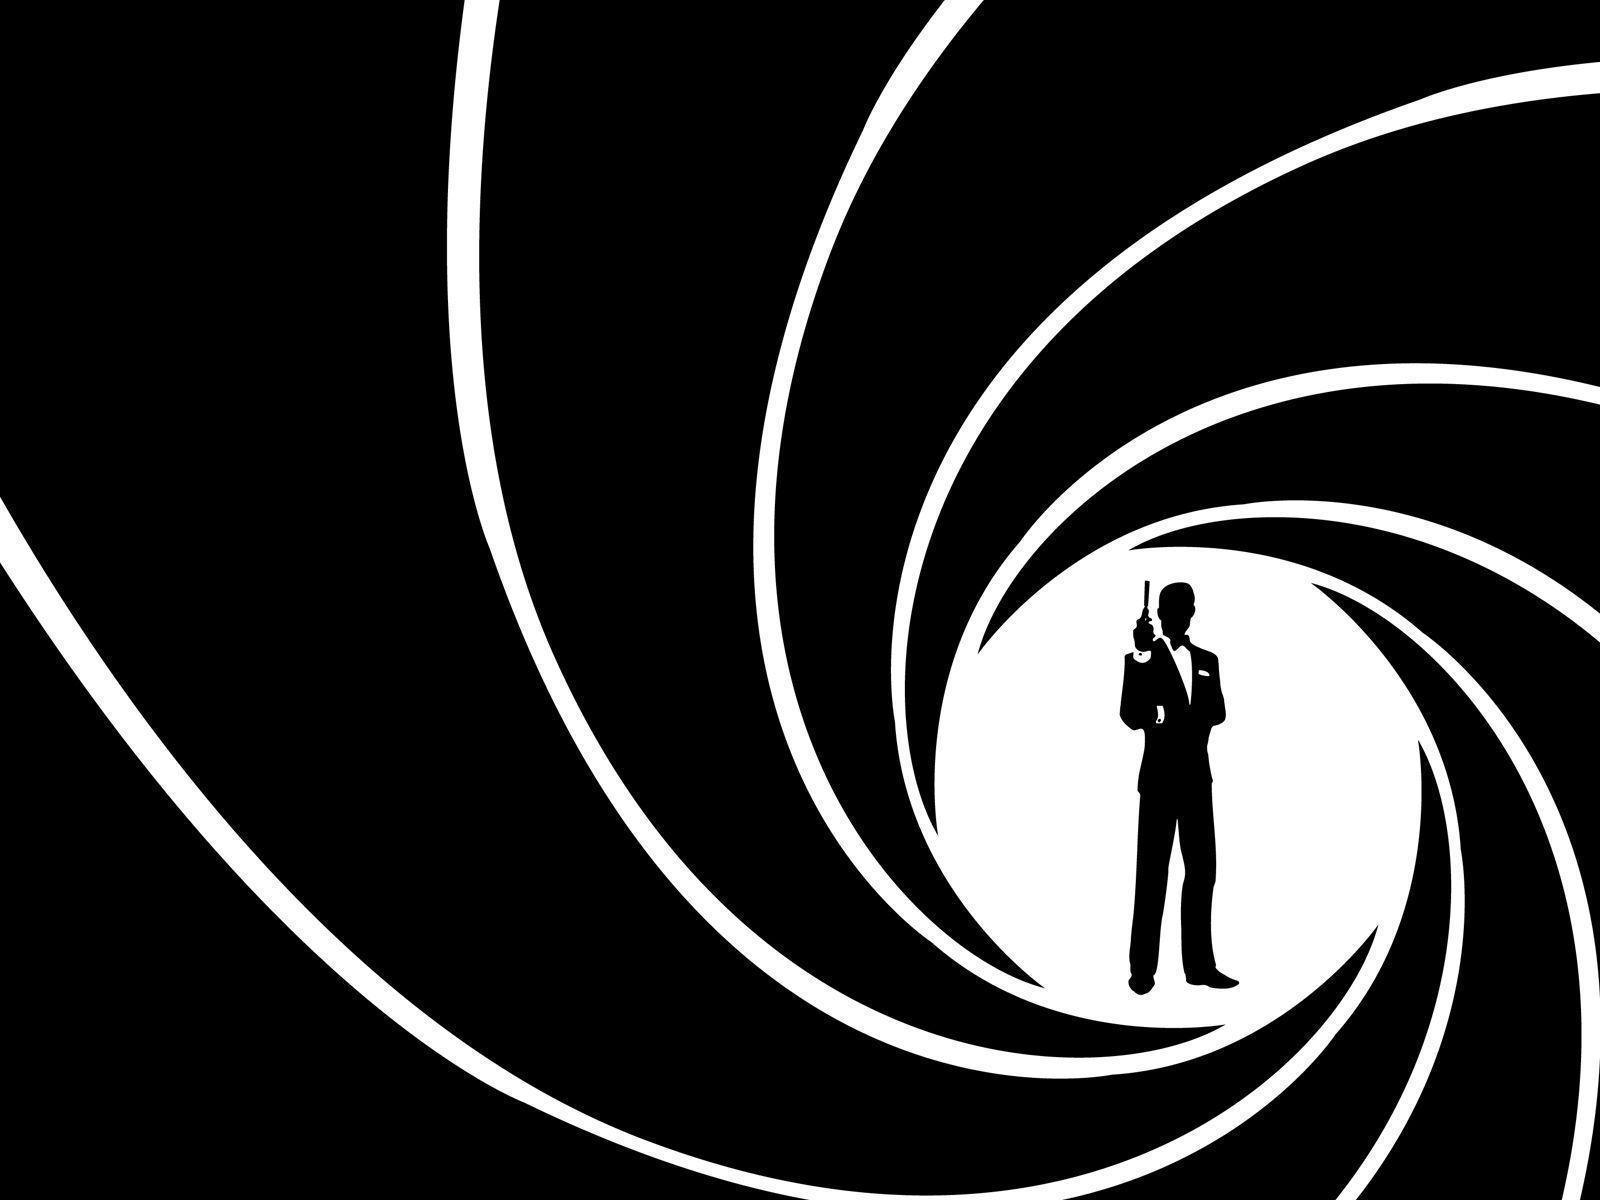 Image For > James Bond 007 Logo Wallpapers